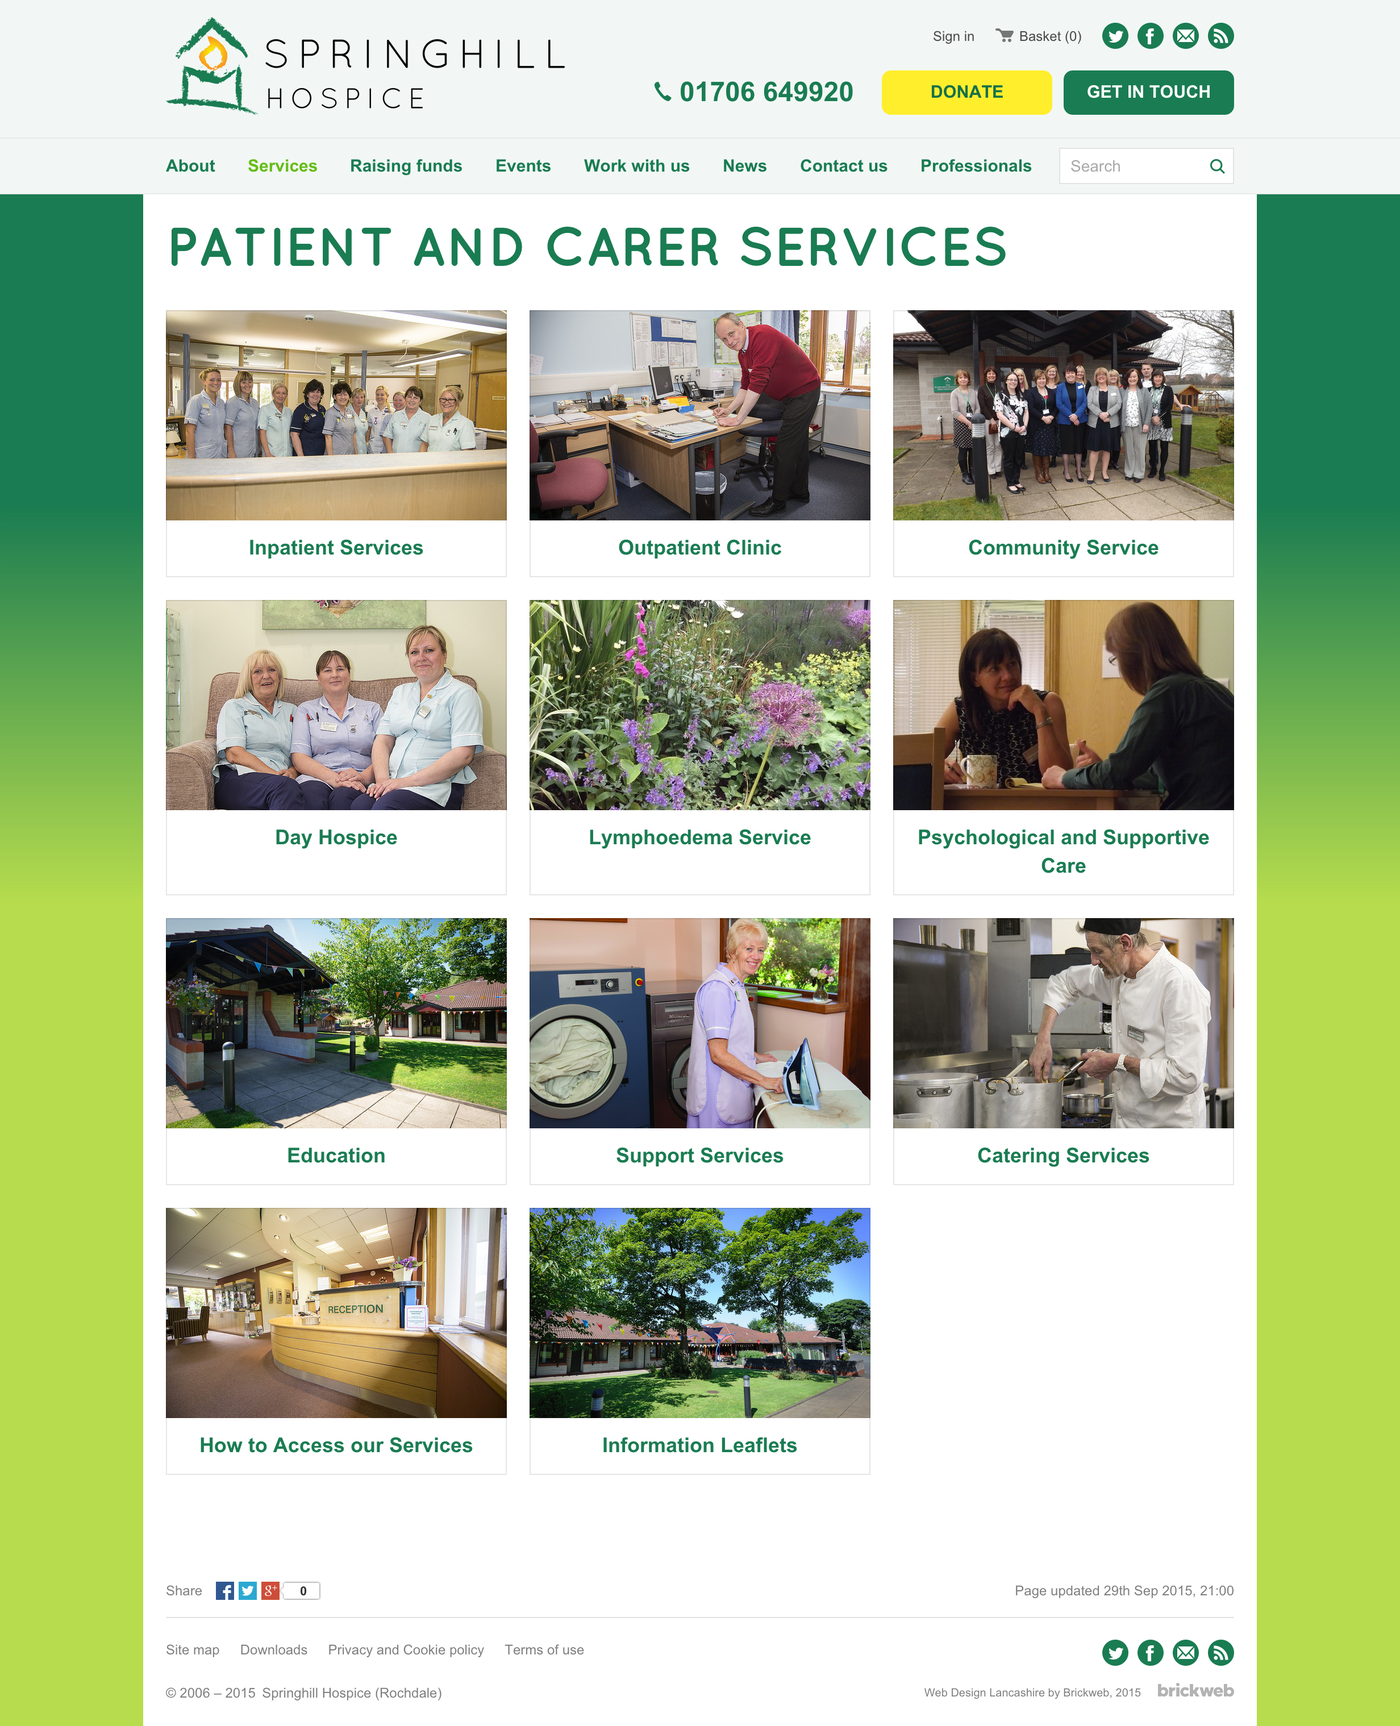 Springhill Hospice Services